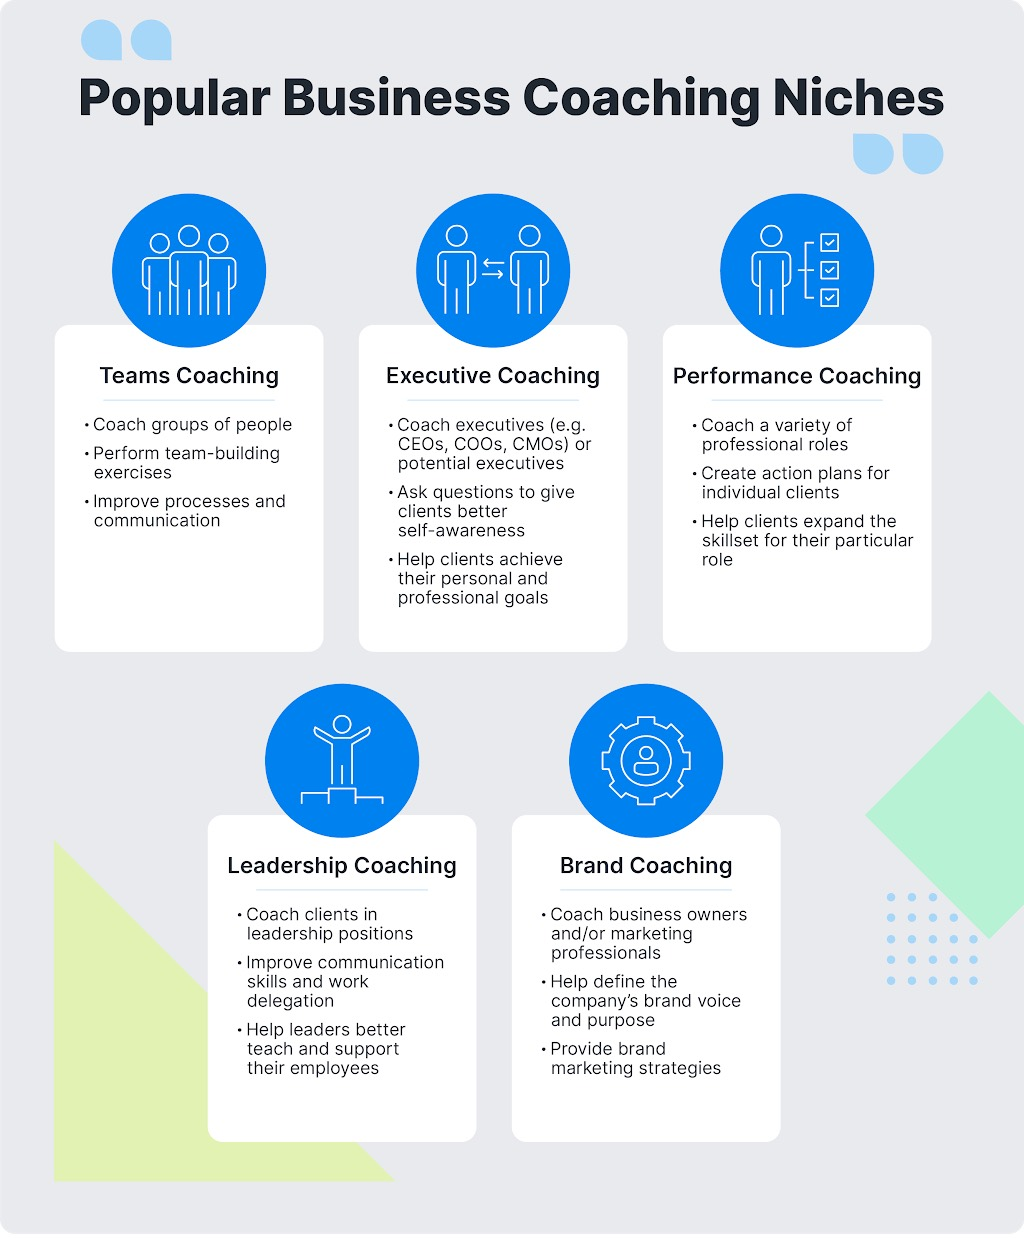 Different types of business coaching specialties with their main functions